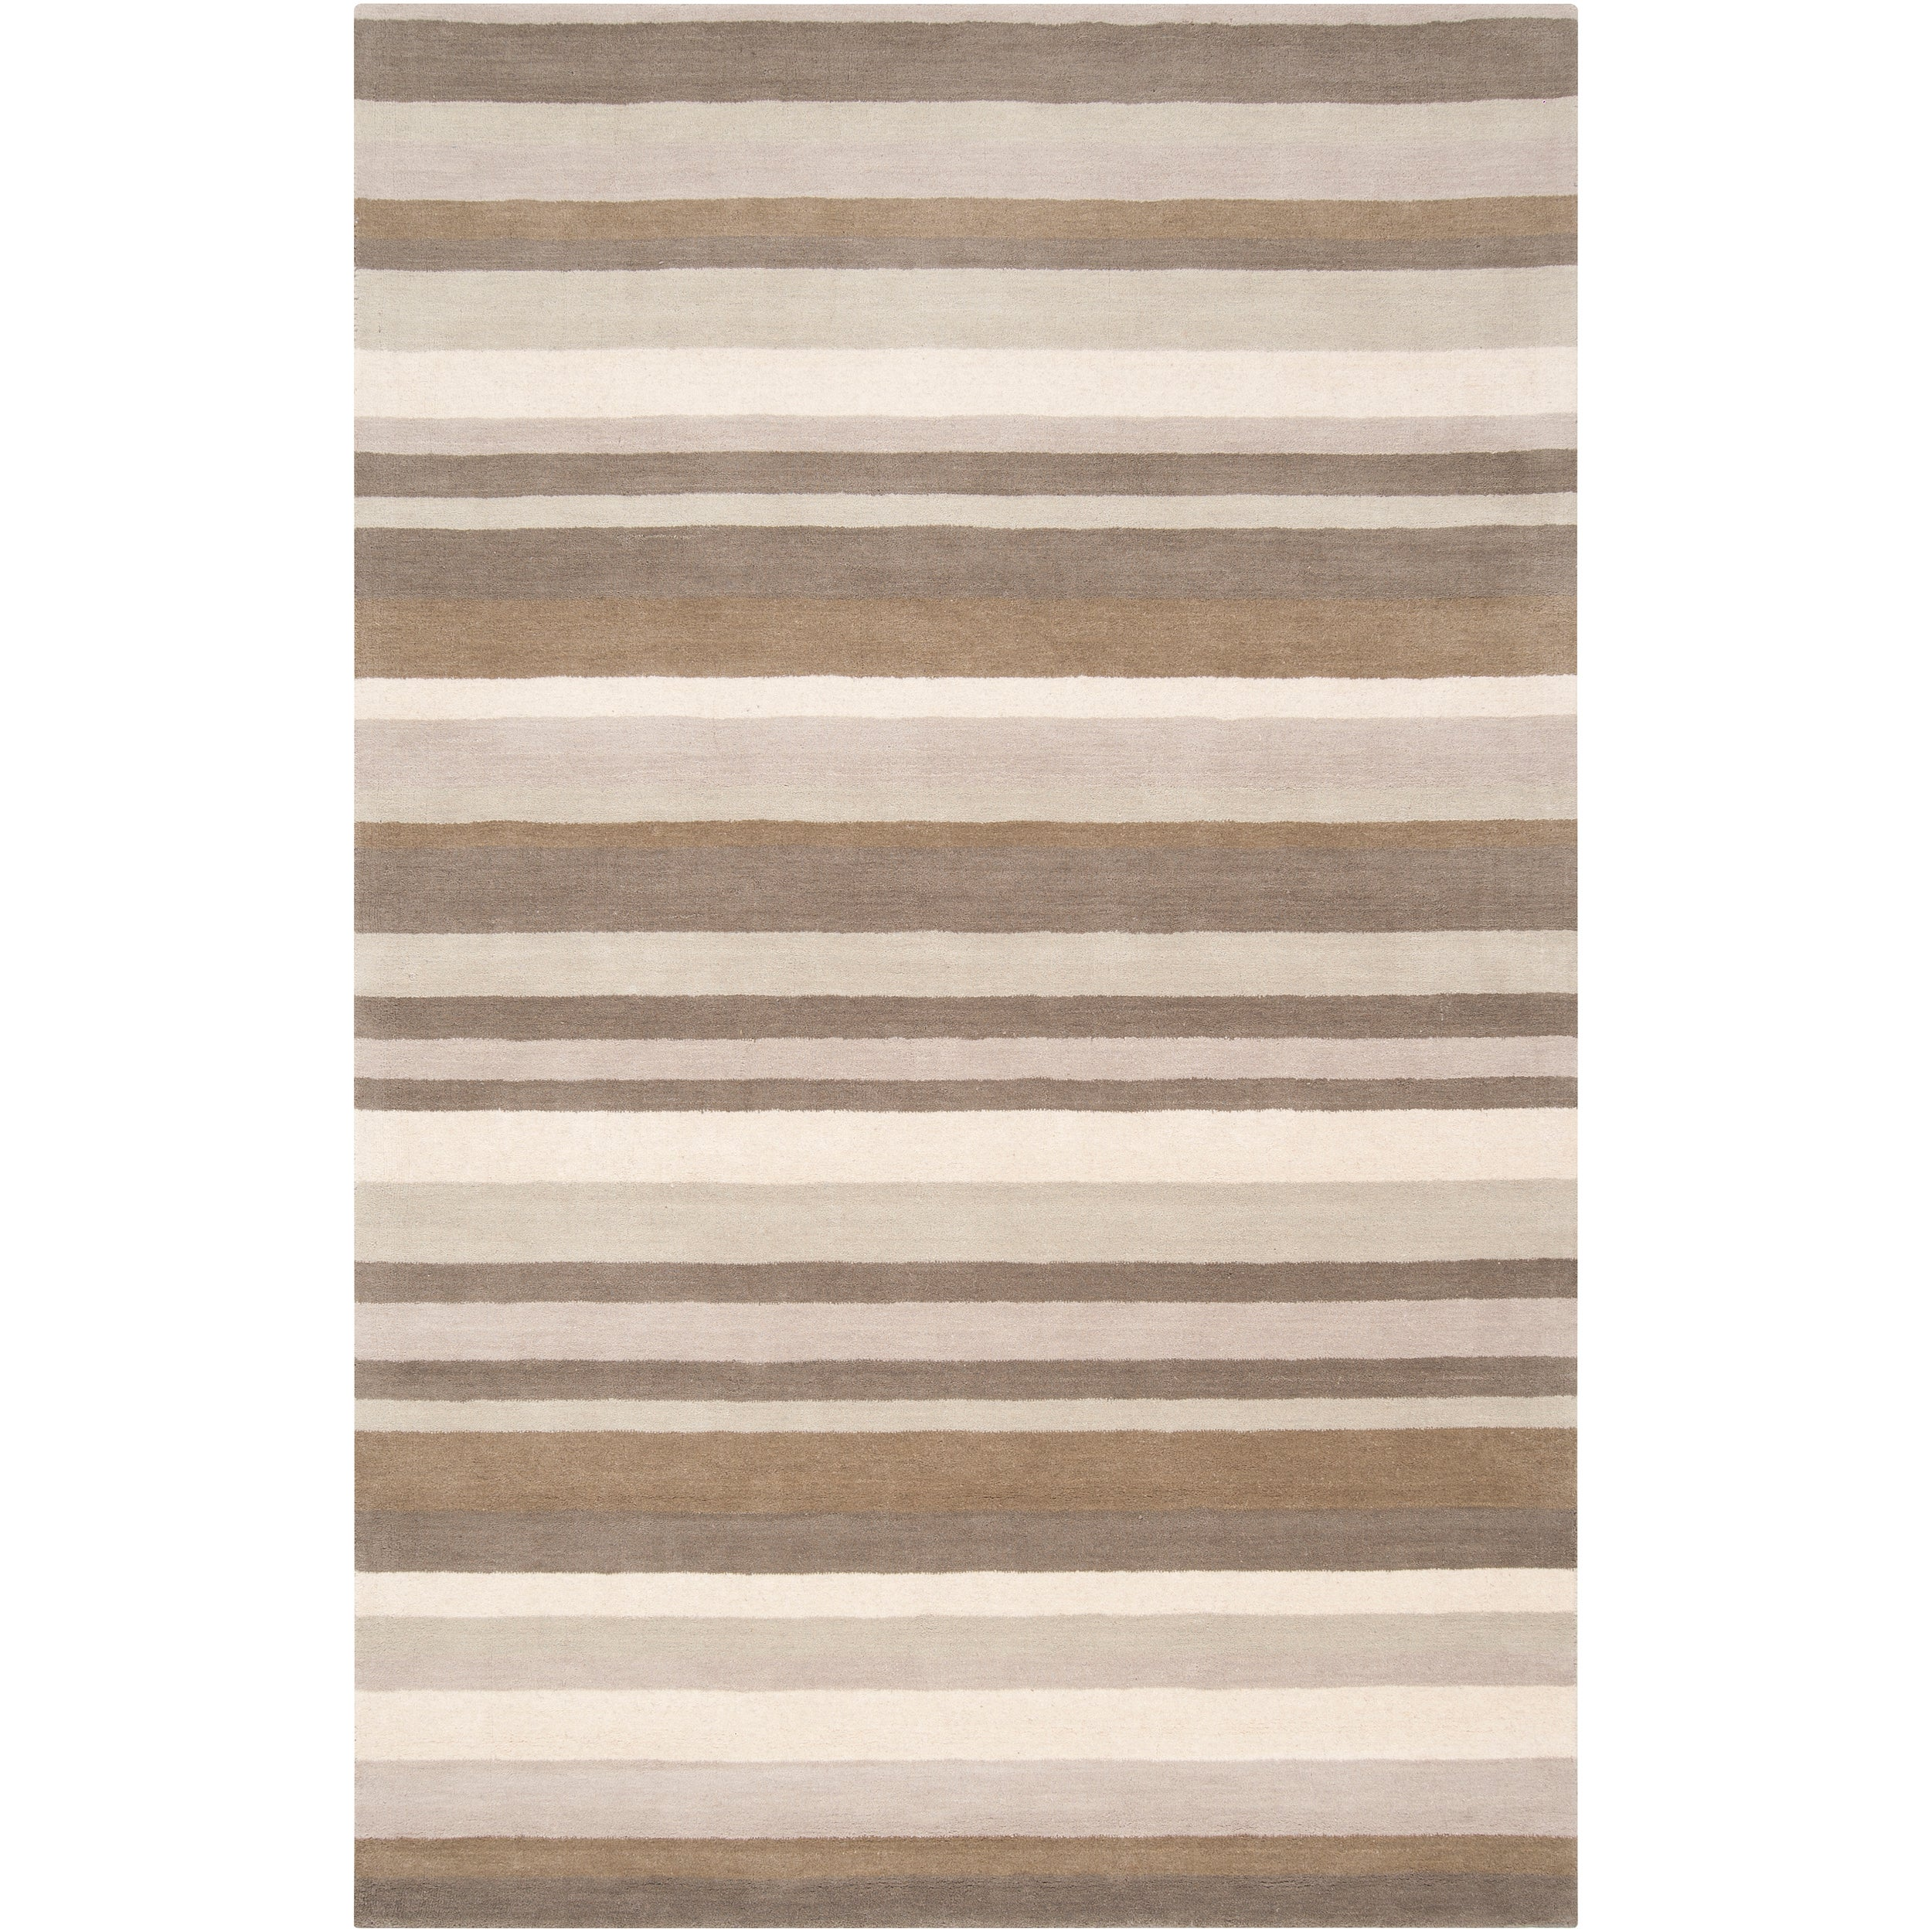 Loomed Grey Madison Square Wool Area Rug (8' x 10')